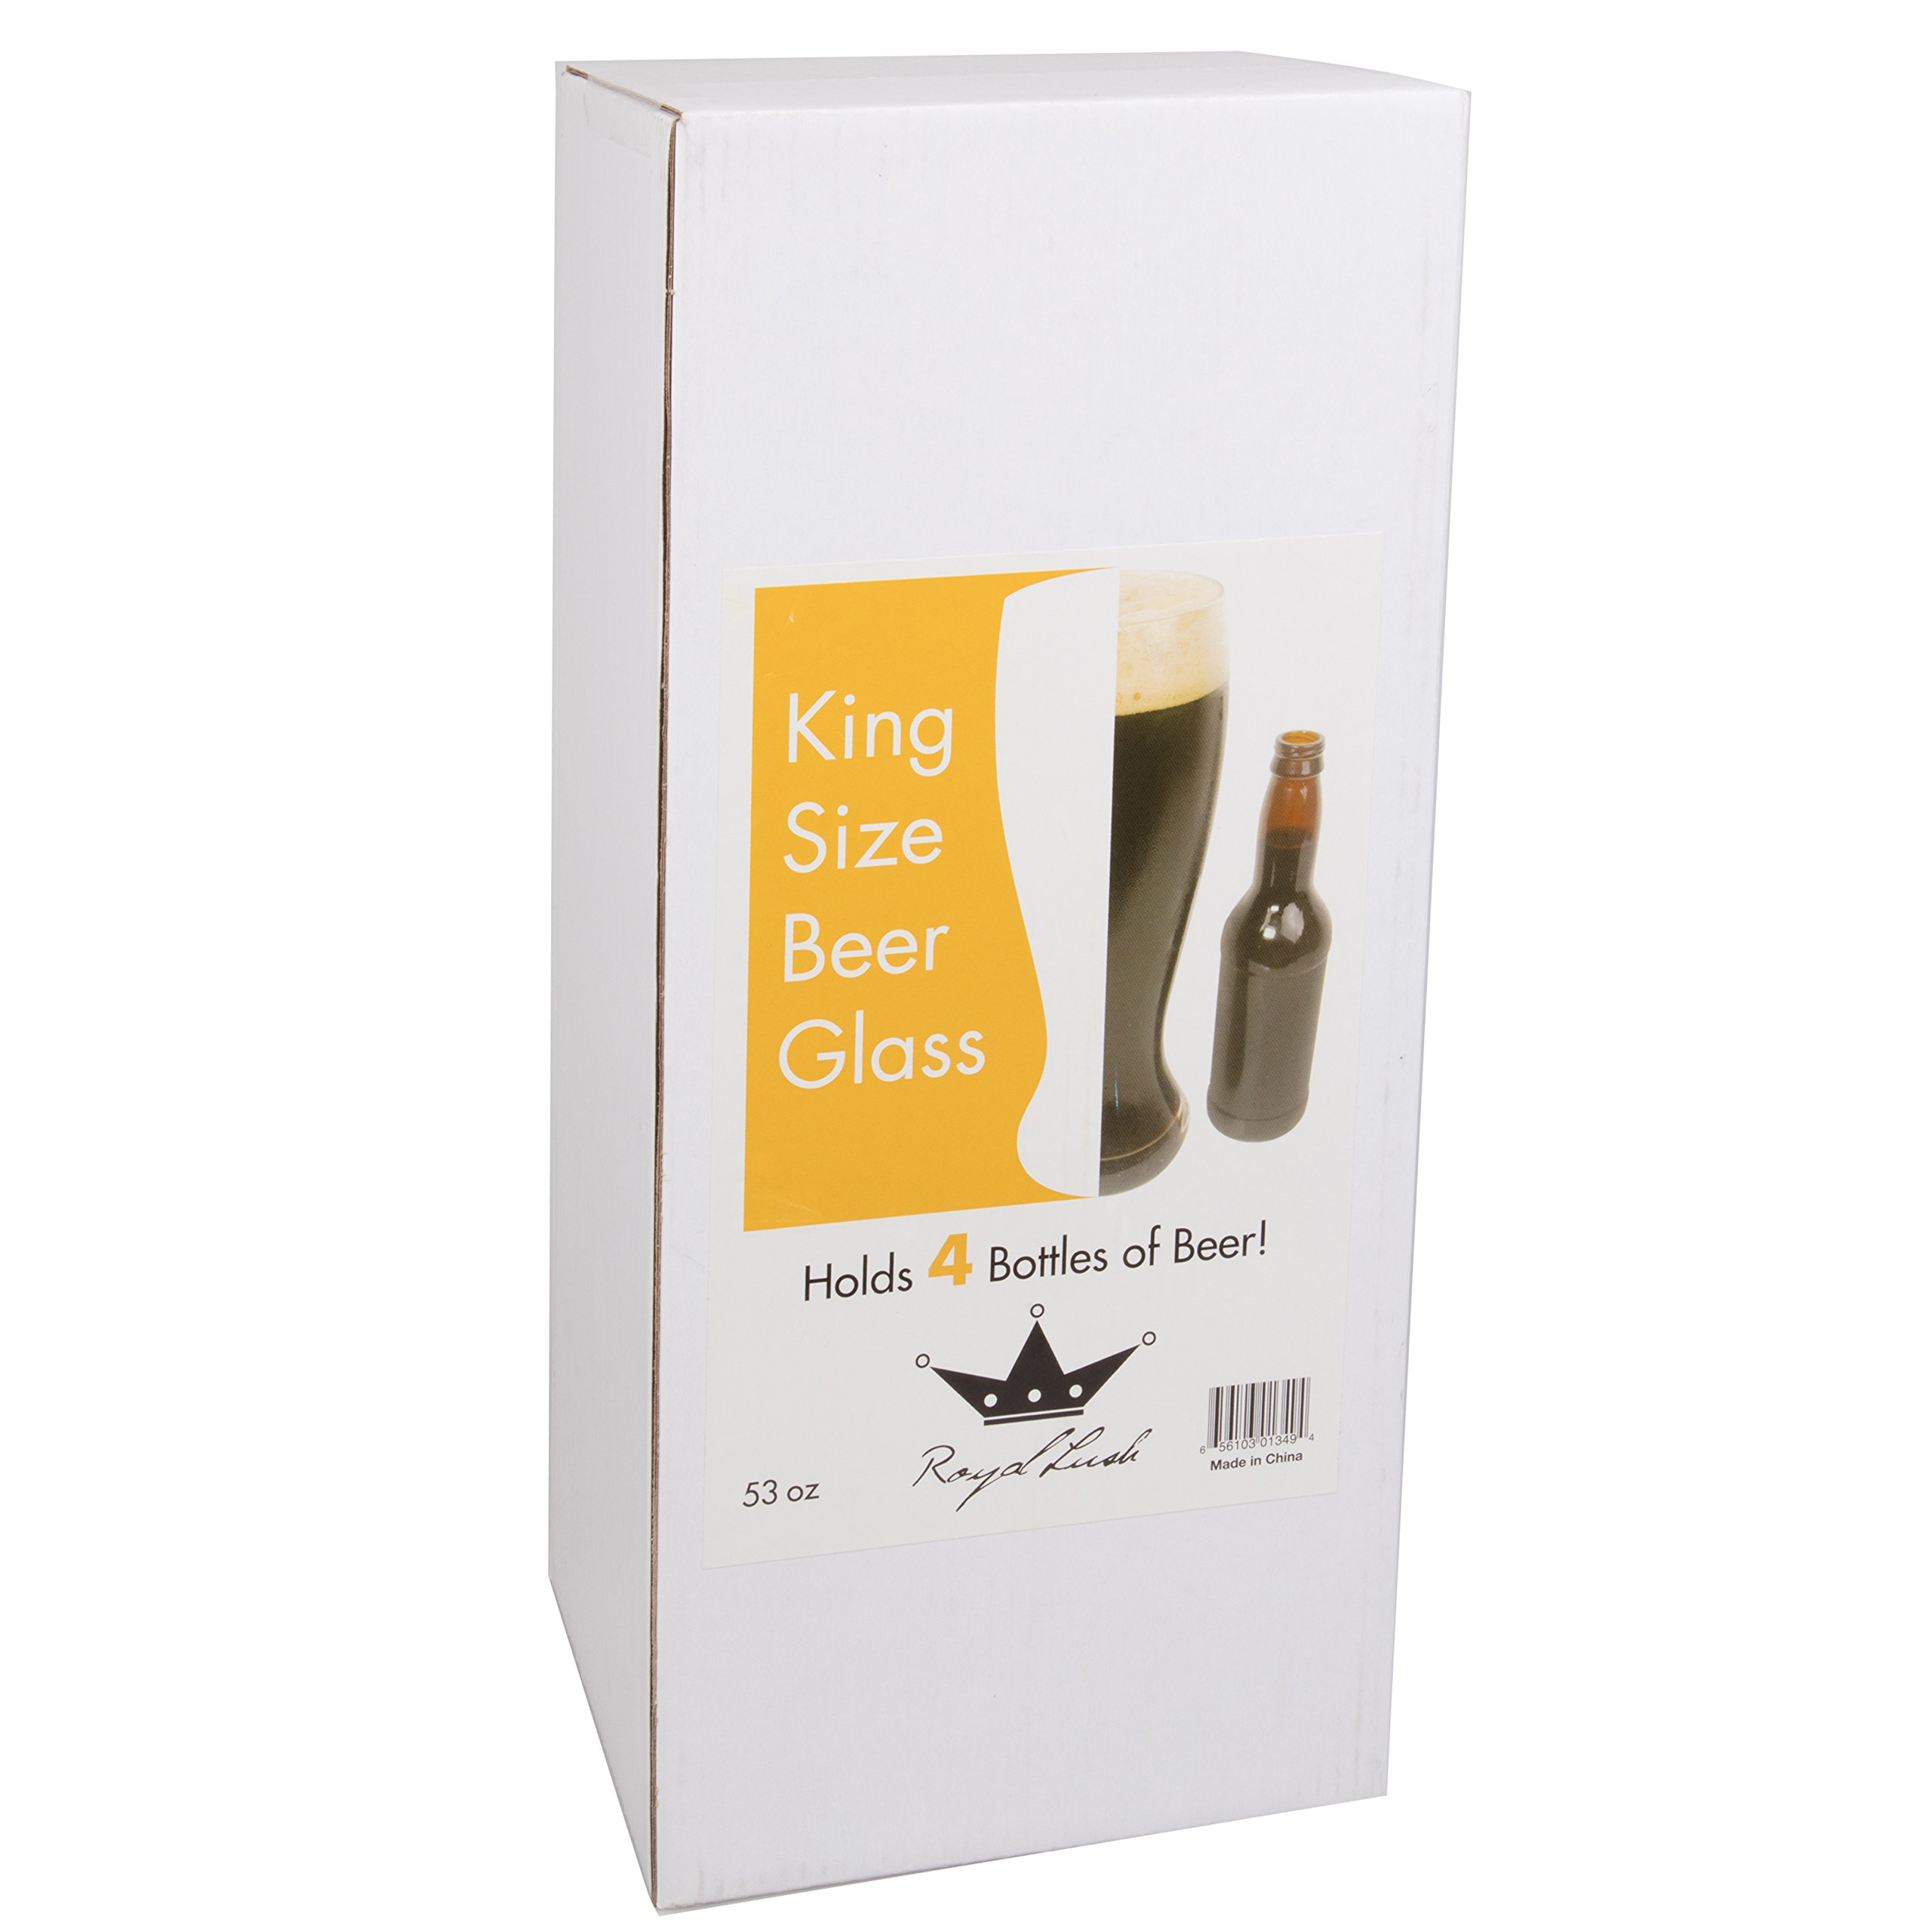 Oversized Extra Large Giant Beer Glass - 53oz - Holds up to 4 Bottles of Beers by Royal Lush (Image #2)